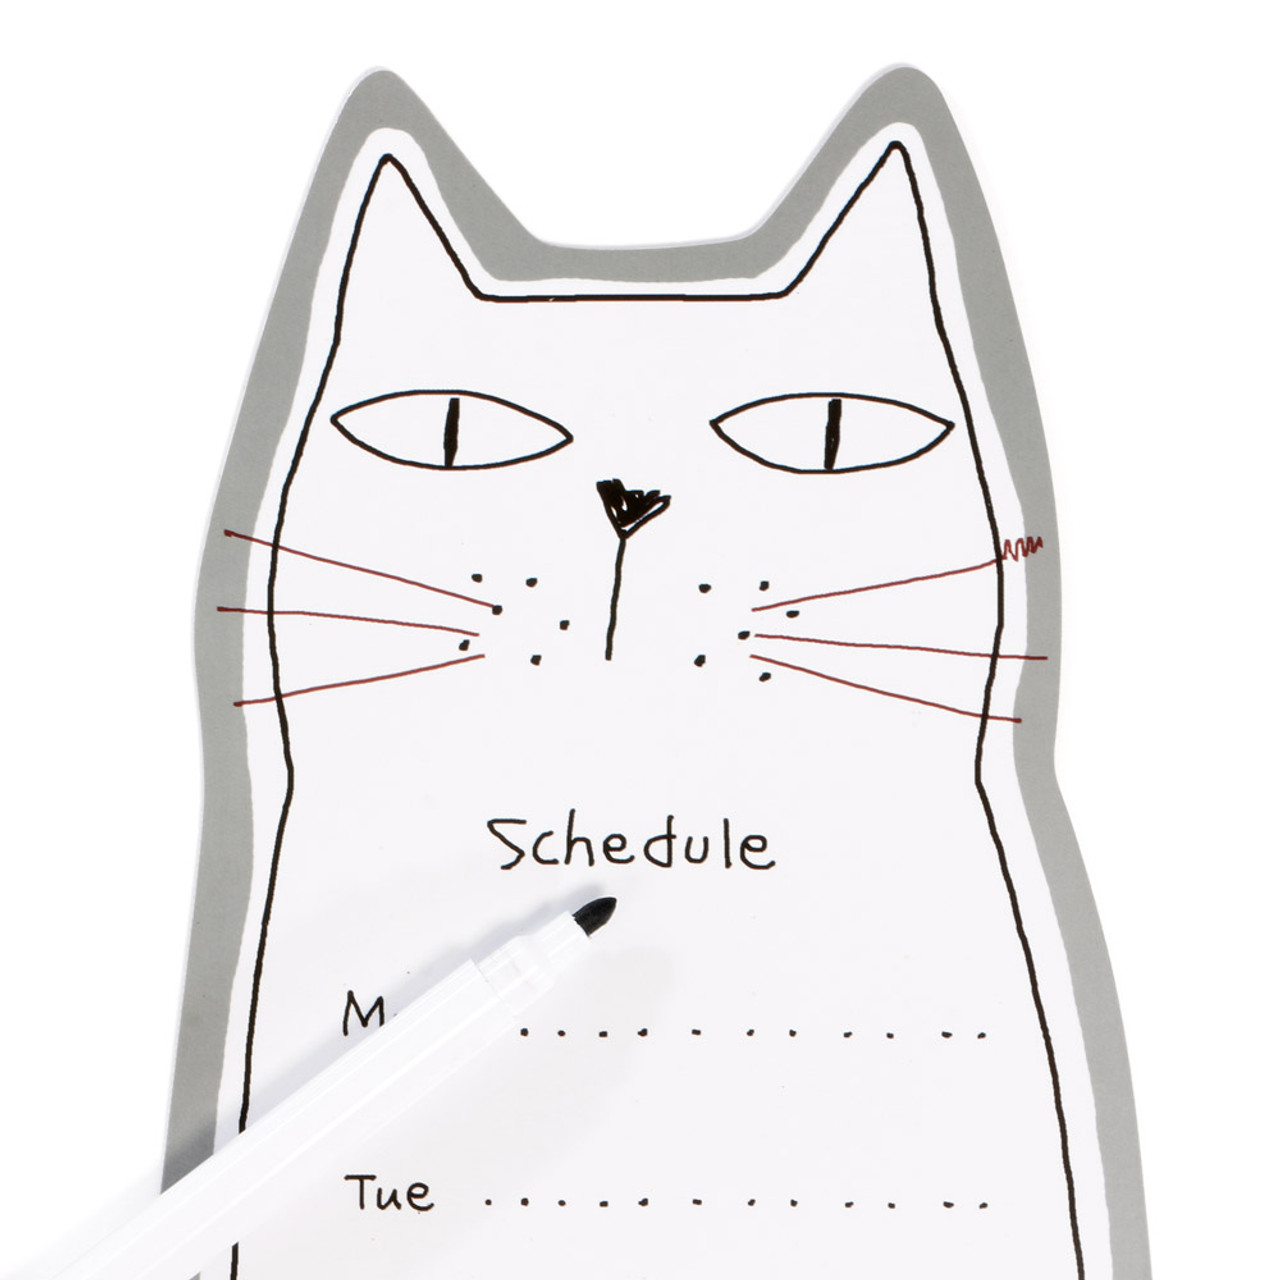 Noafamily Nekomania Grey Cat Magnet Schedule white board with Board Marker ( Close-up )